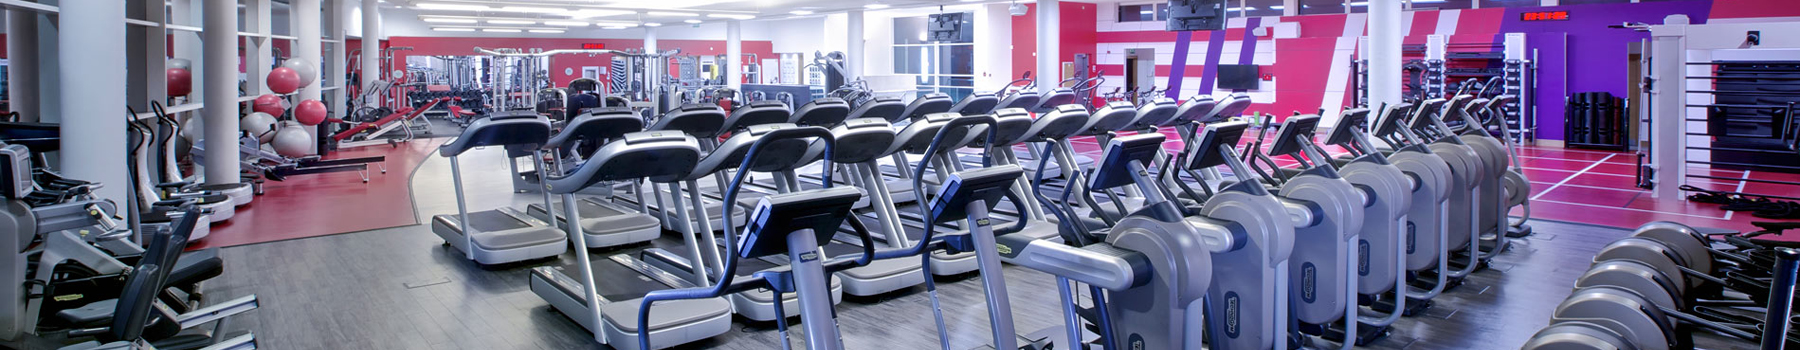 5 Free and Inexpensive Fitness Center Marketing Ideas